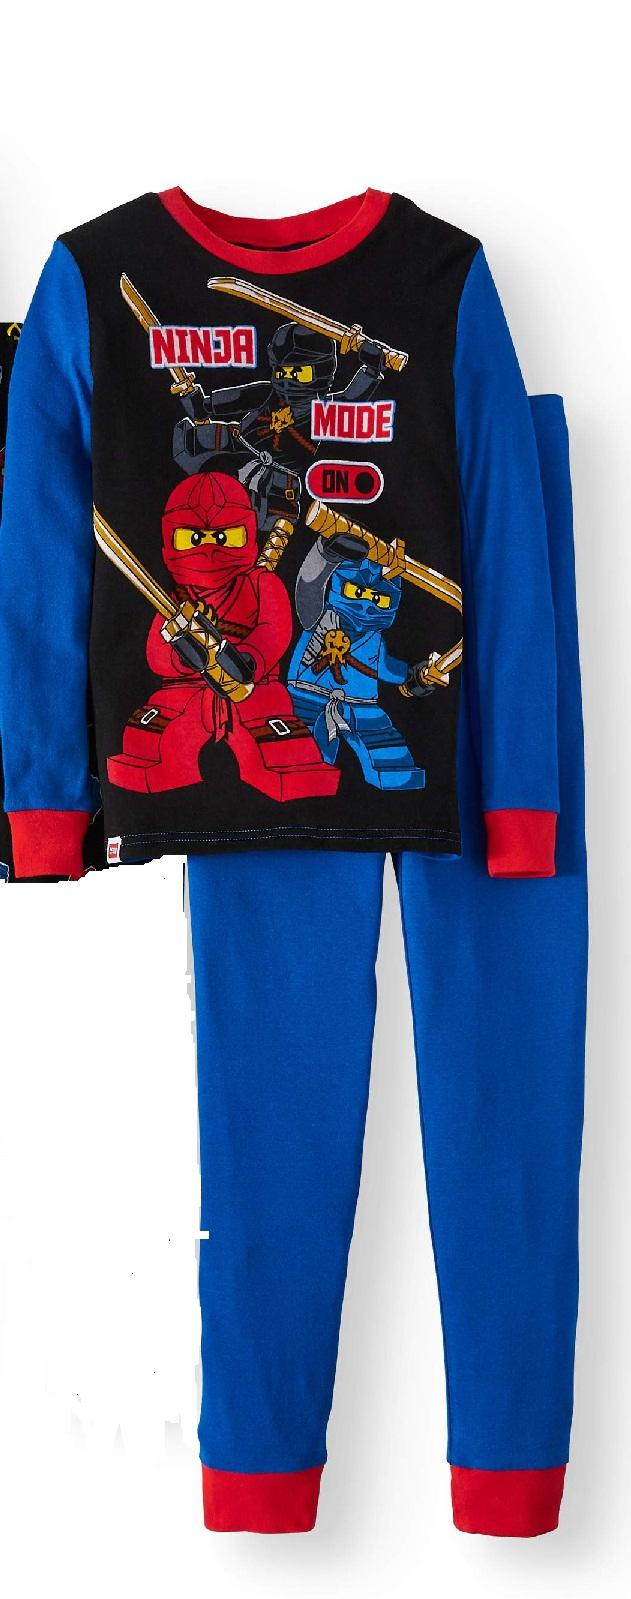 Lego Ninjago 2 Piece Pajama Longsleeves Set Get Big Discount Now! By Discount Store.